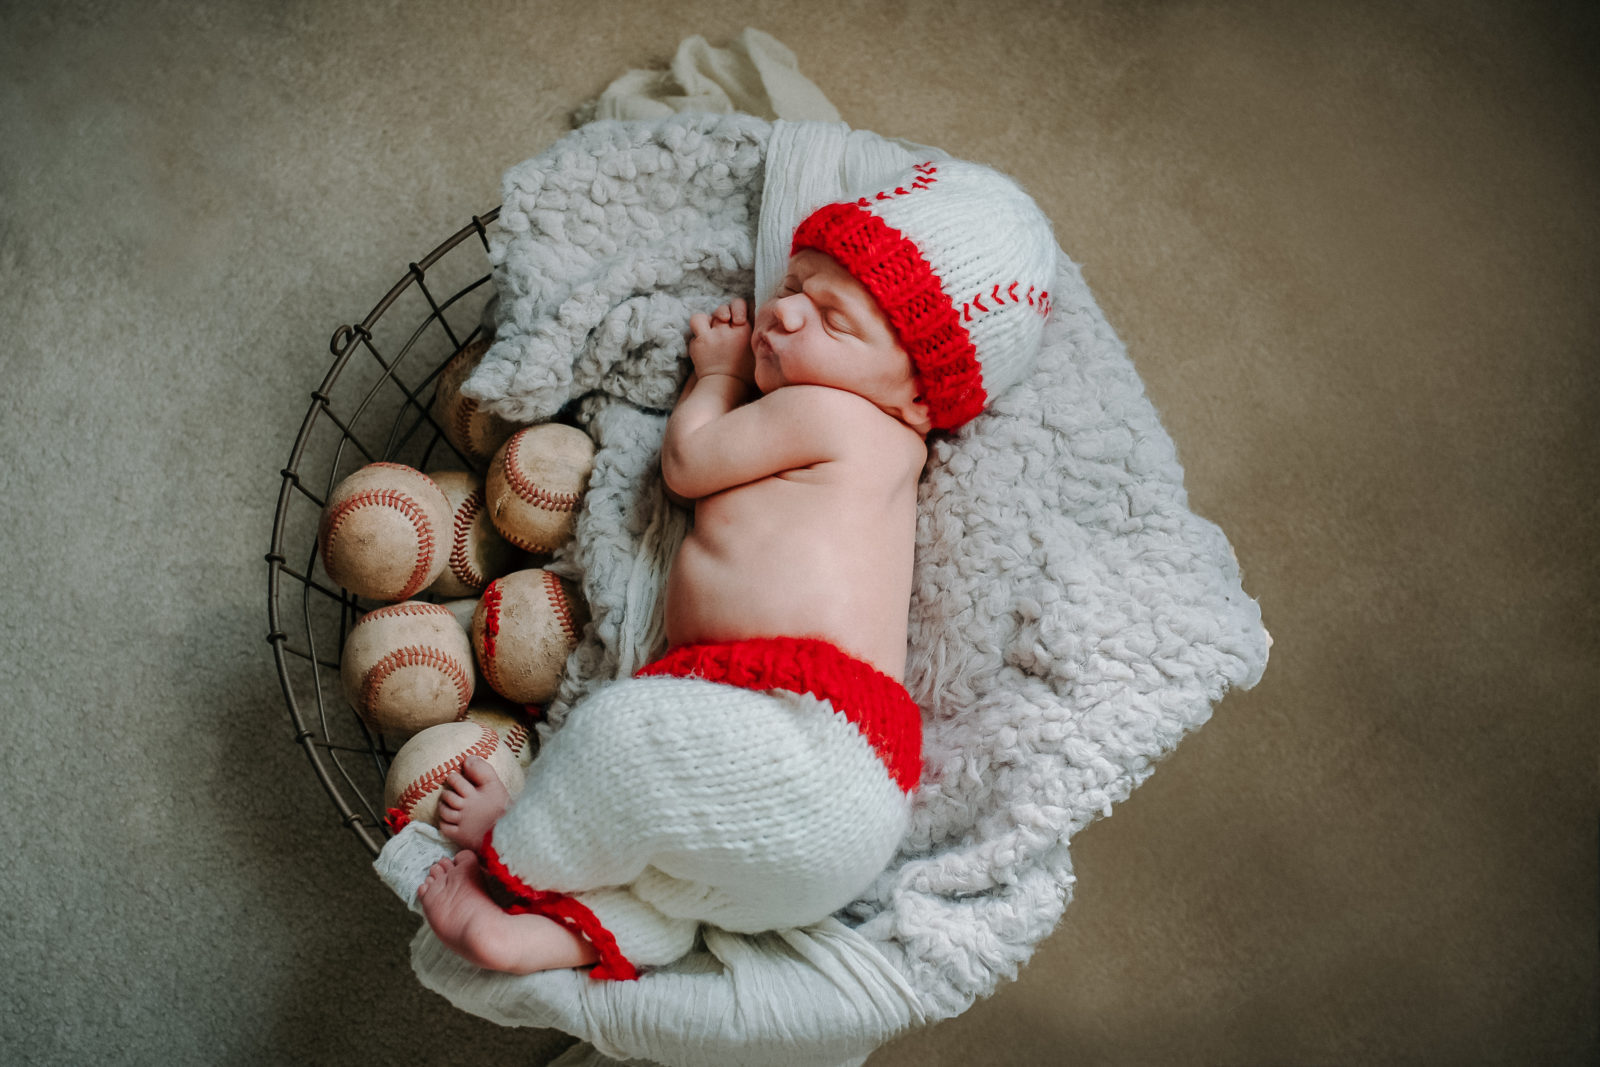 Newborn baby dressed up as baseball player asleep in a basket full of baseballs in occasion of his newborn photoshoot with ArtShaped Photography and Birth Services